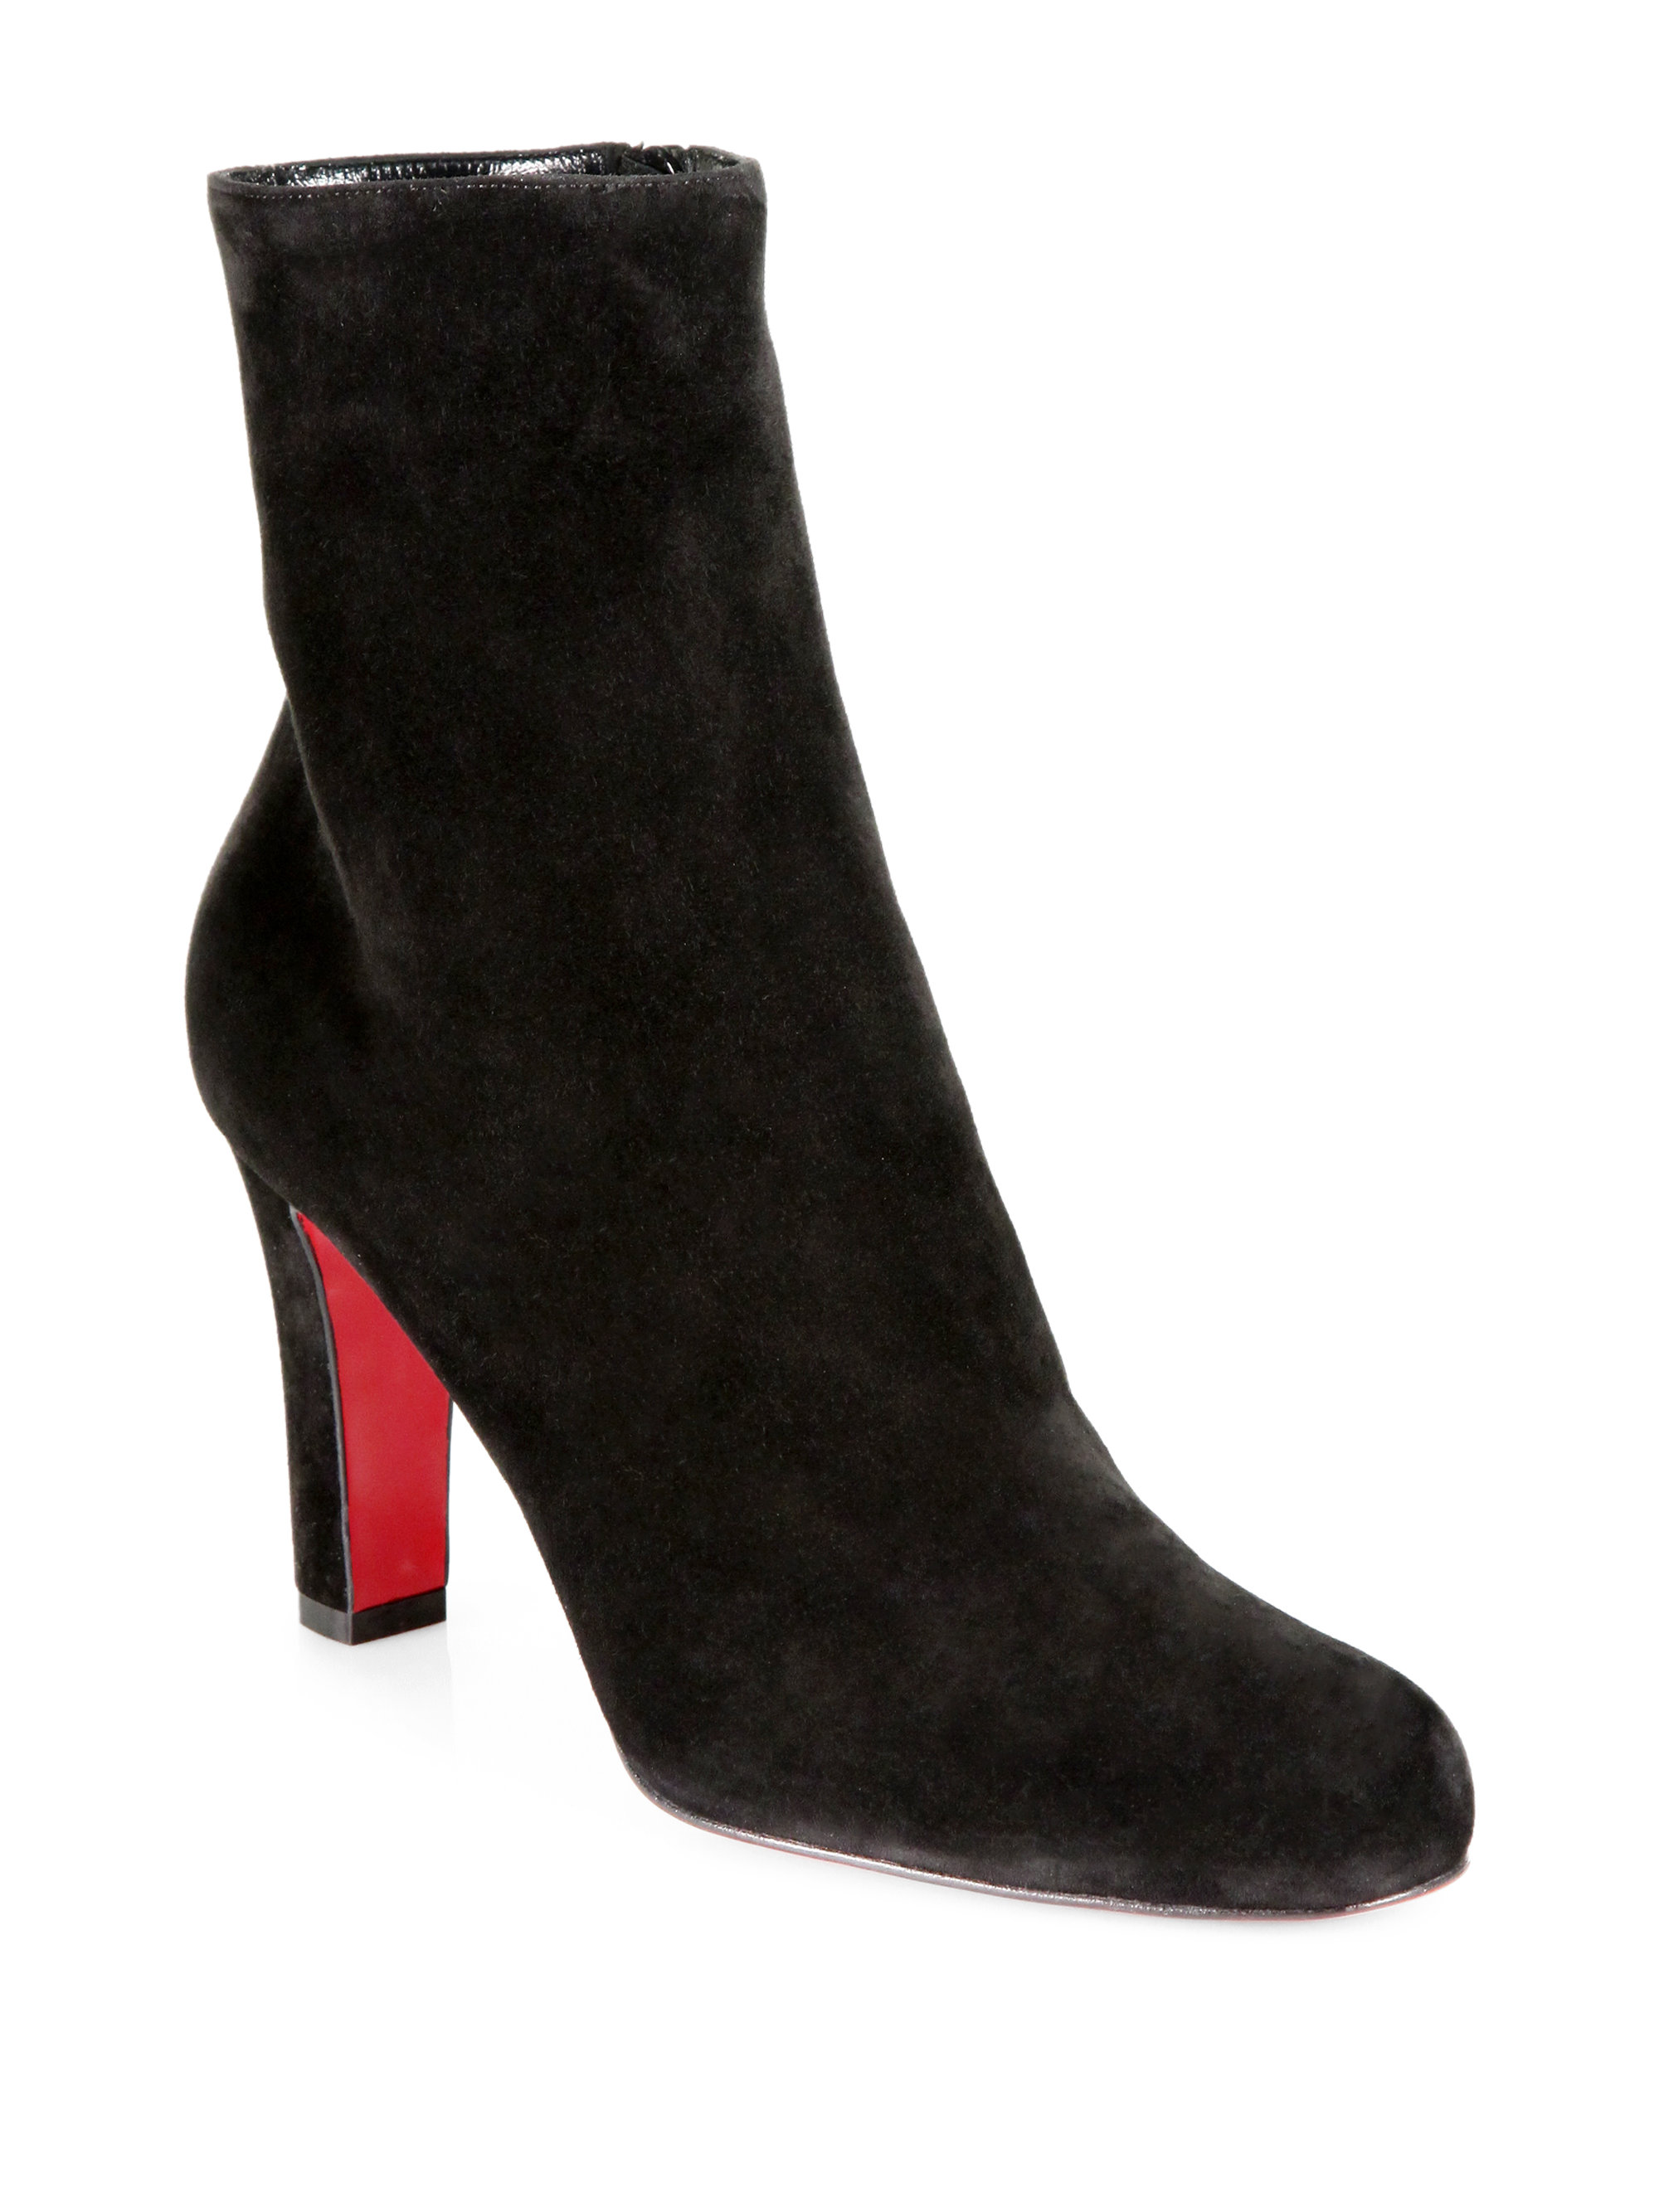 06325909489 purchase christian louboutin black ankle boots e3266 a75dd